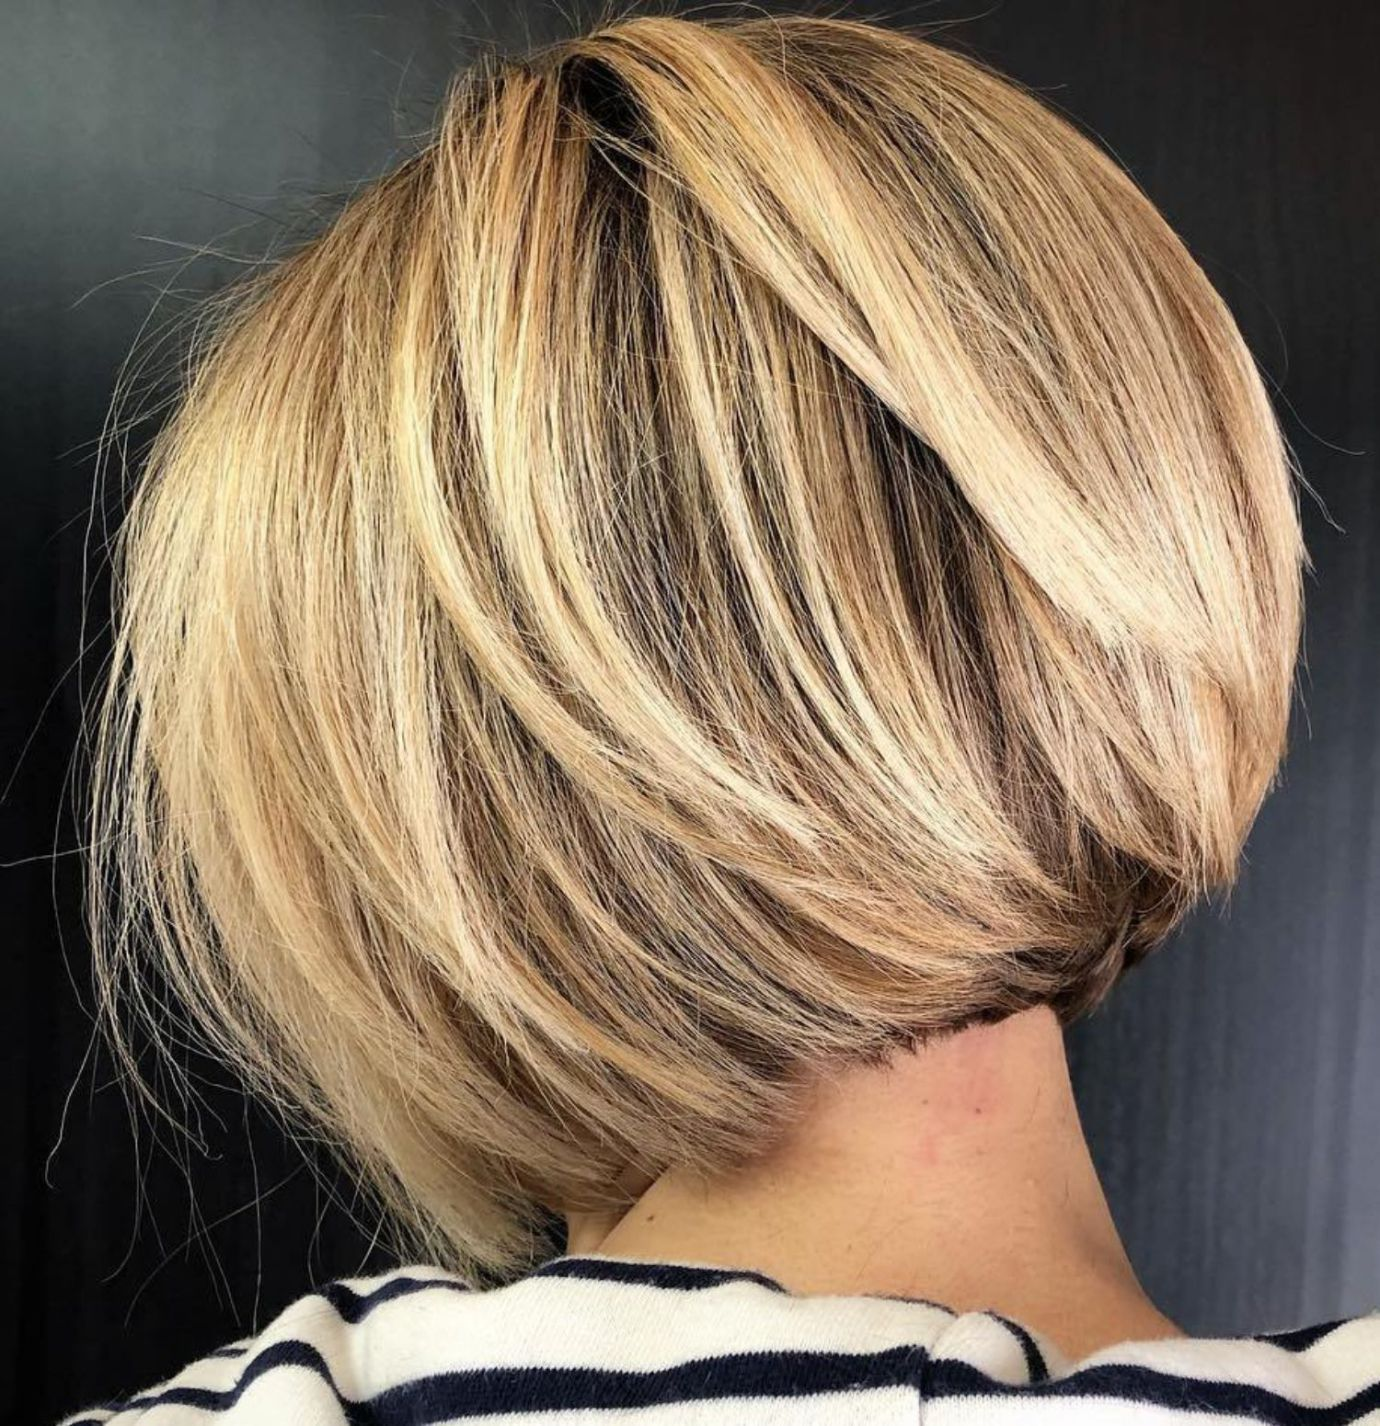 60 Layered Bob Styles Modern Haircuts With Layers For Any Occasion Kapsels Kort Haar Kapsels Kapsels Voor Kort Haar